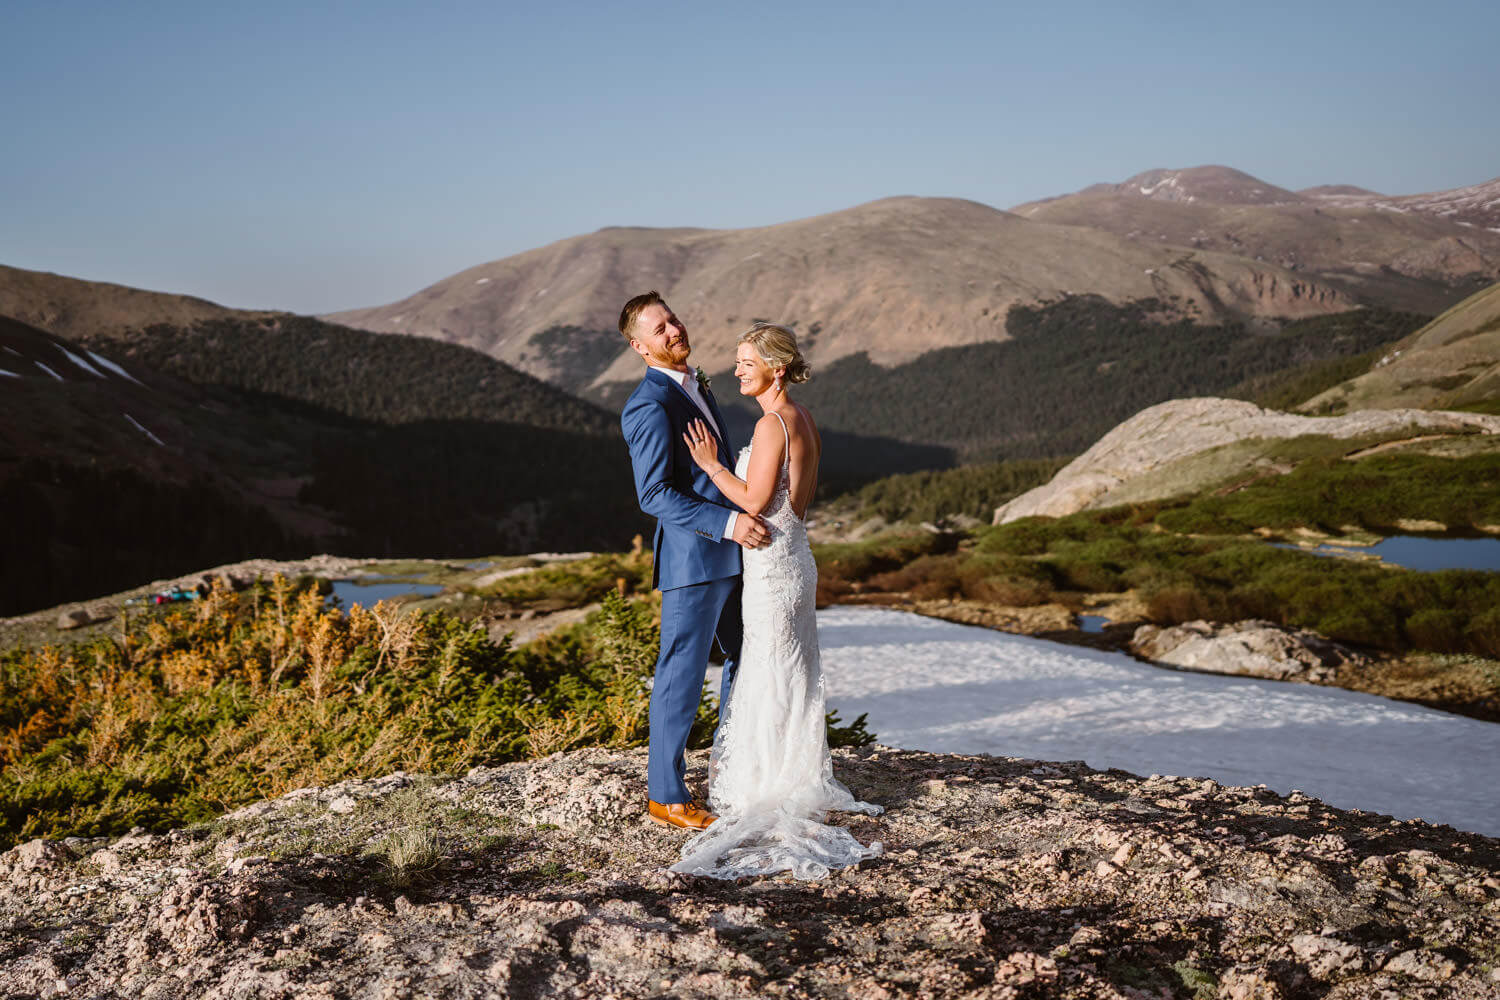 Bride and Groom Laughing Breckenridge Elopement Guide and Spots